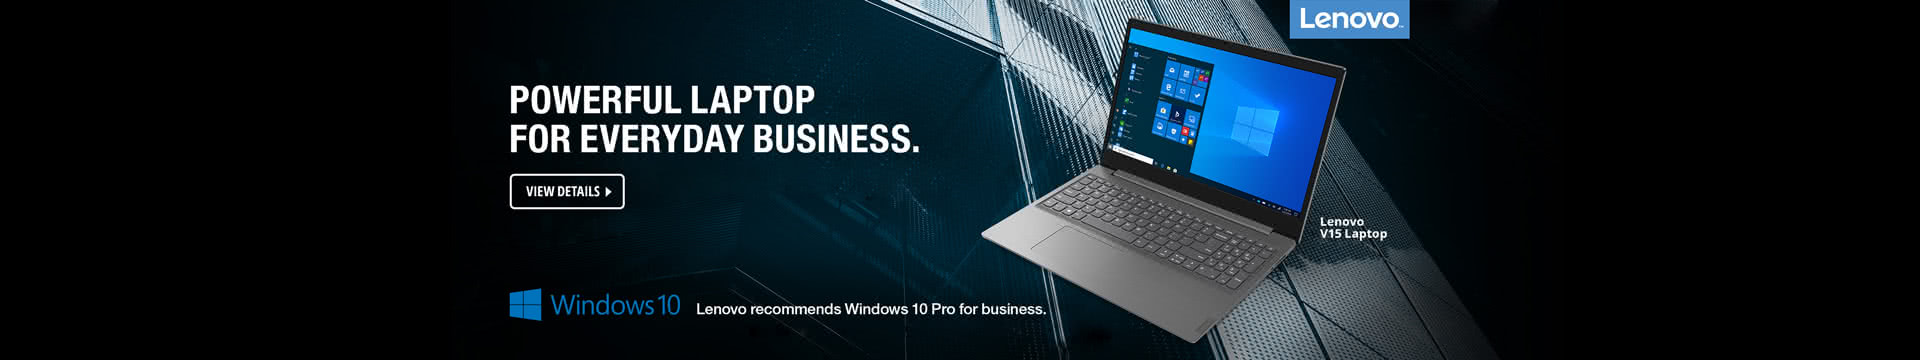 Powerful Laptop for Everyday Business